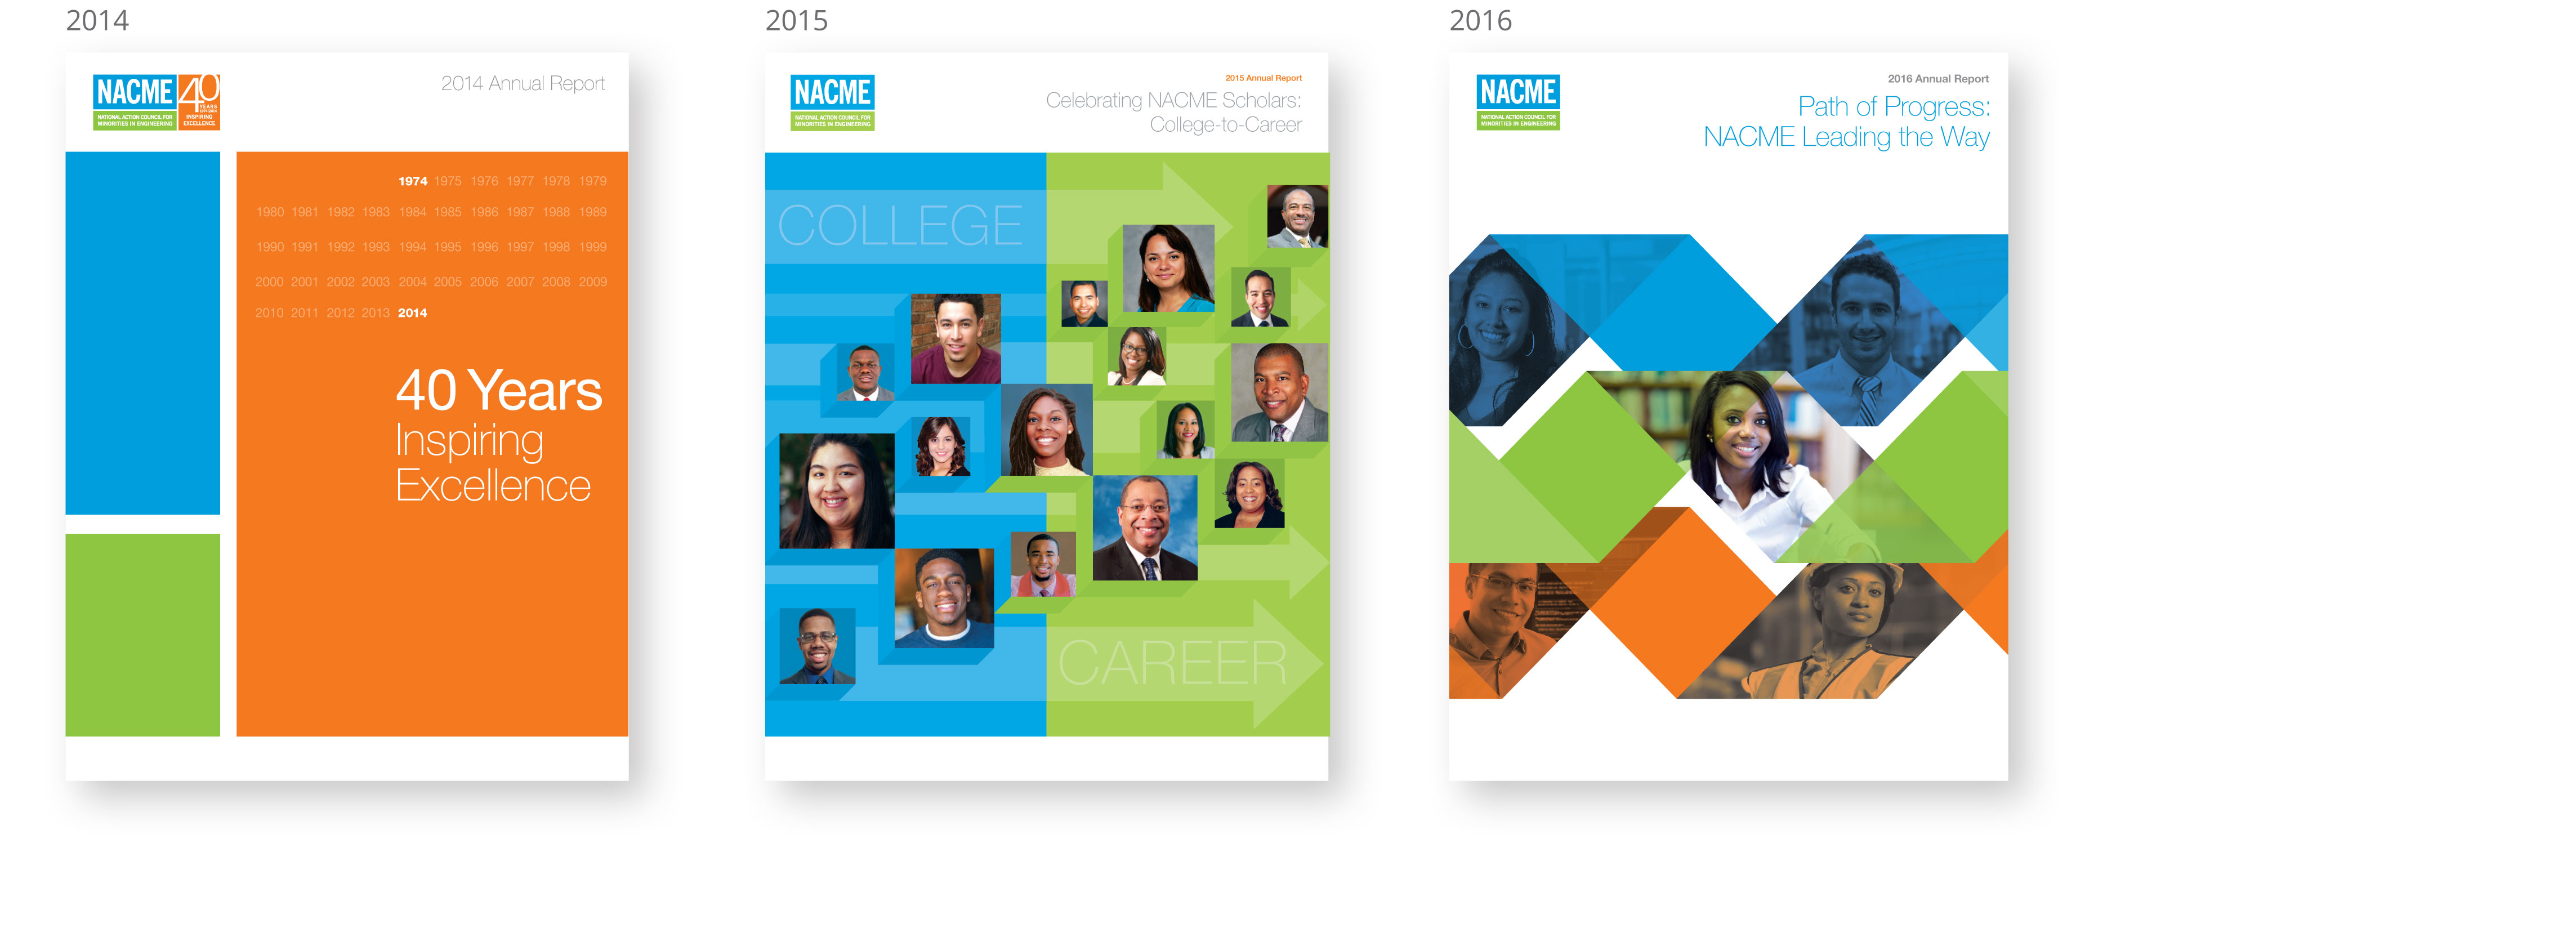 various annual report, nacme, brand design, nonprofit, new york, james wawrzewski